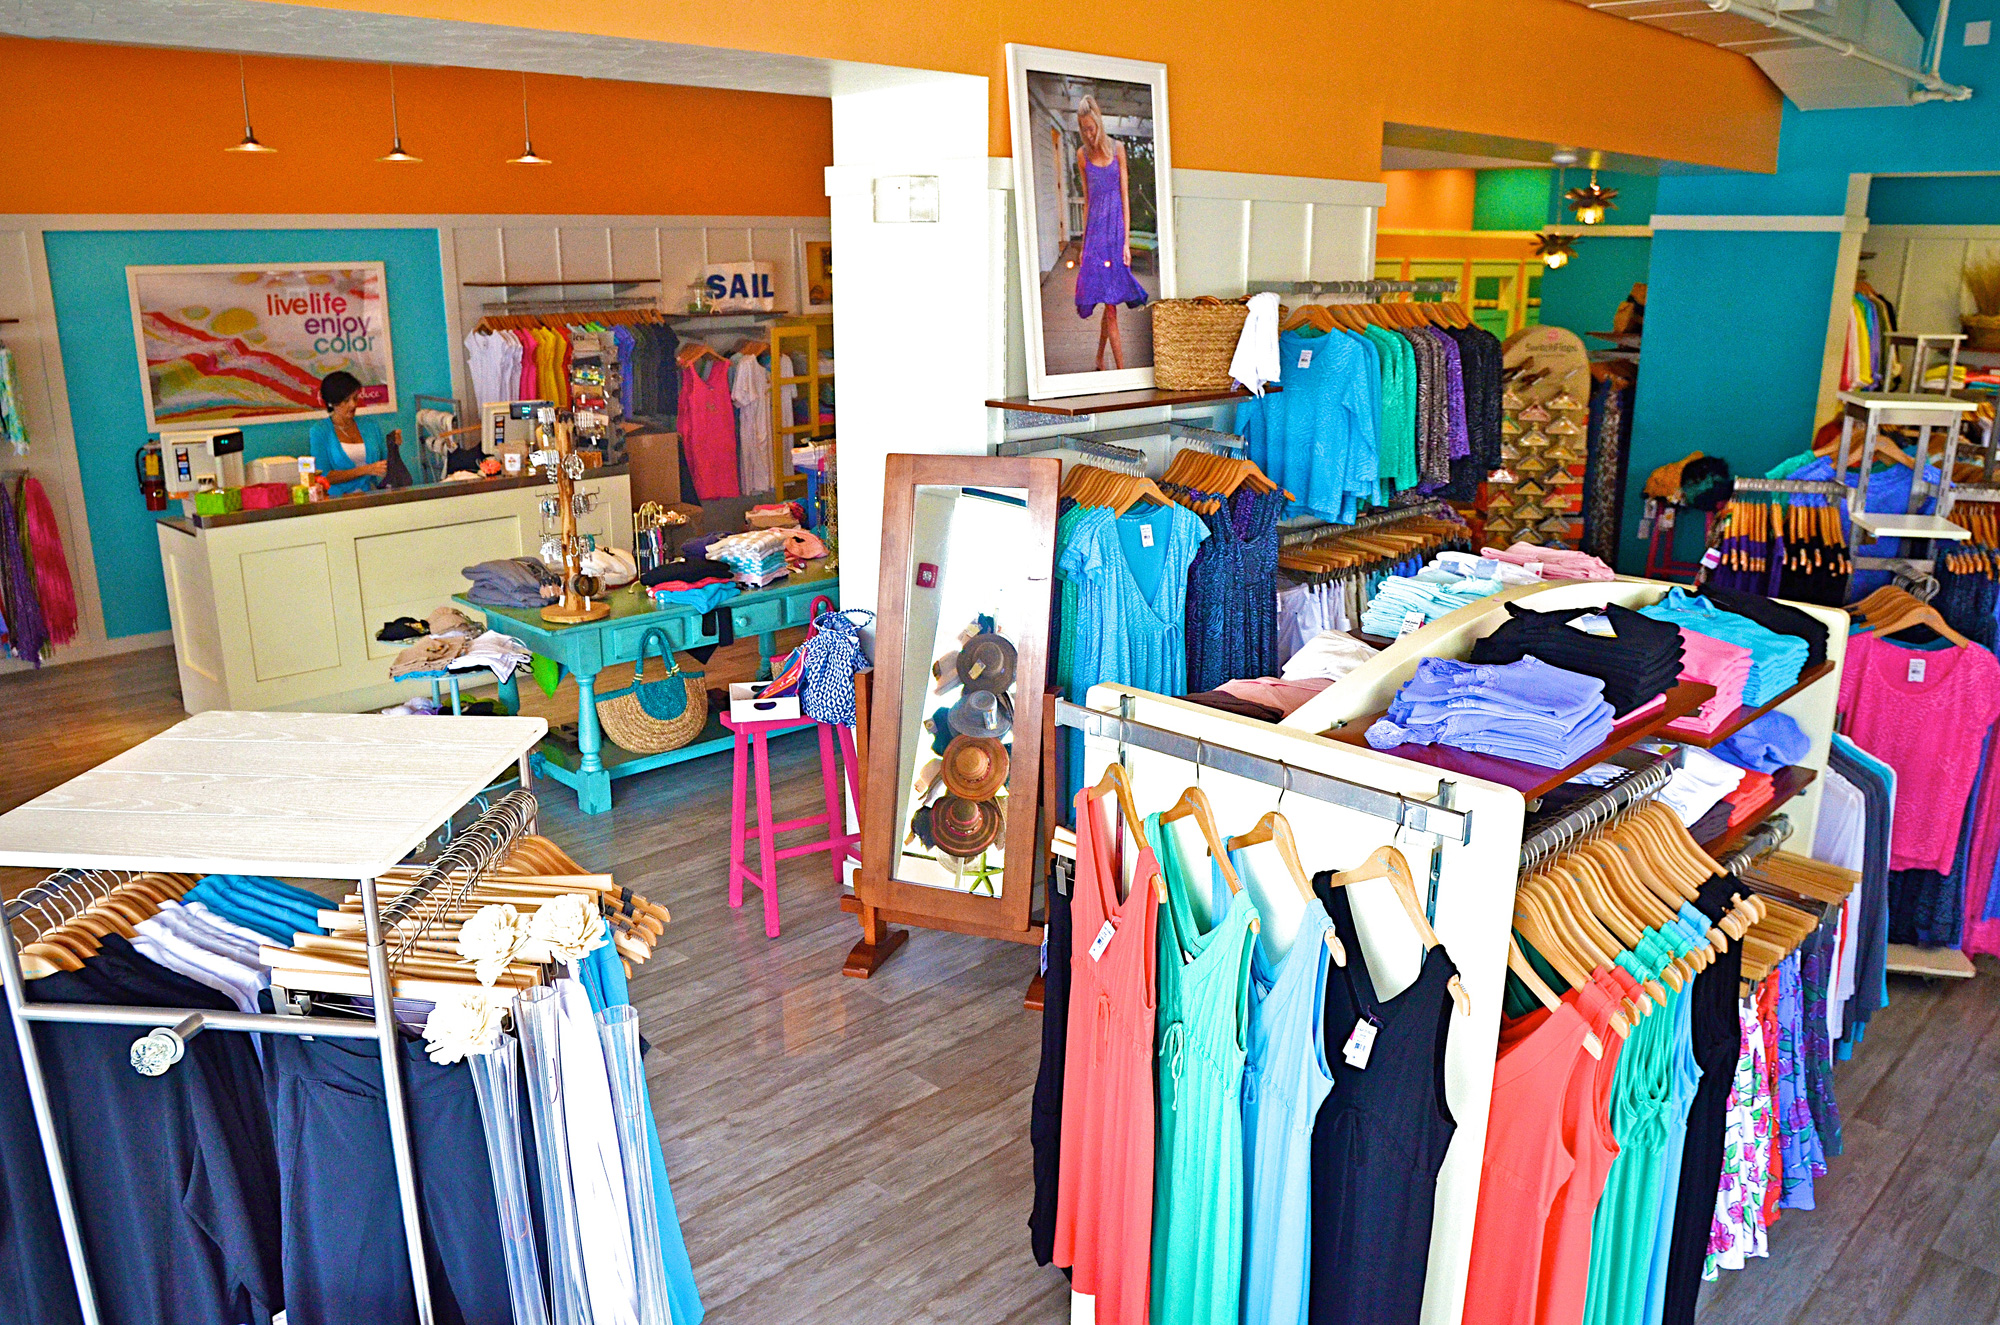 Fresh Produce Clothes recently moved their Tucson, Arizona store to a